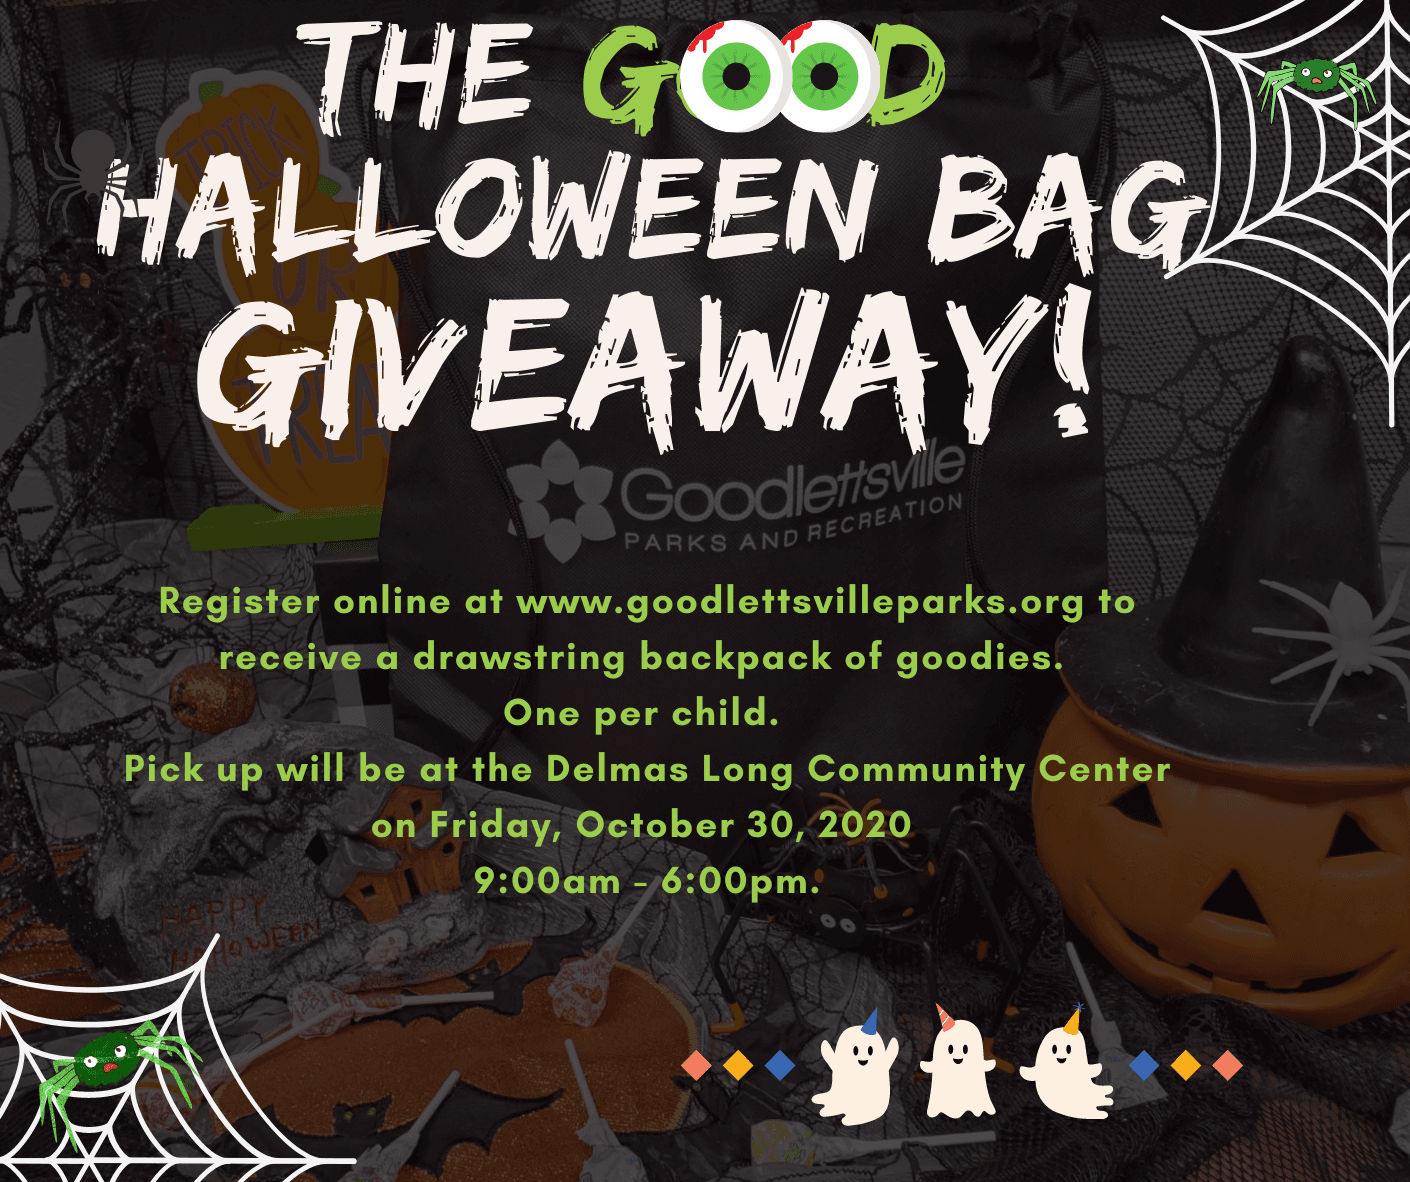 The GOOD Halloween Bag Giveaway